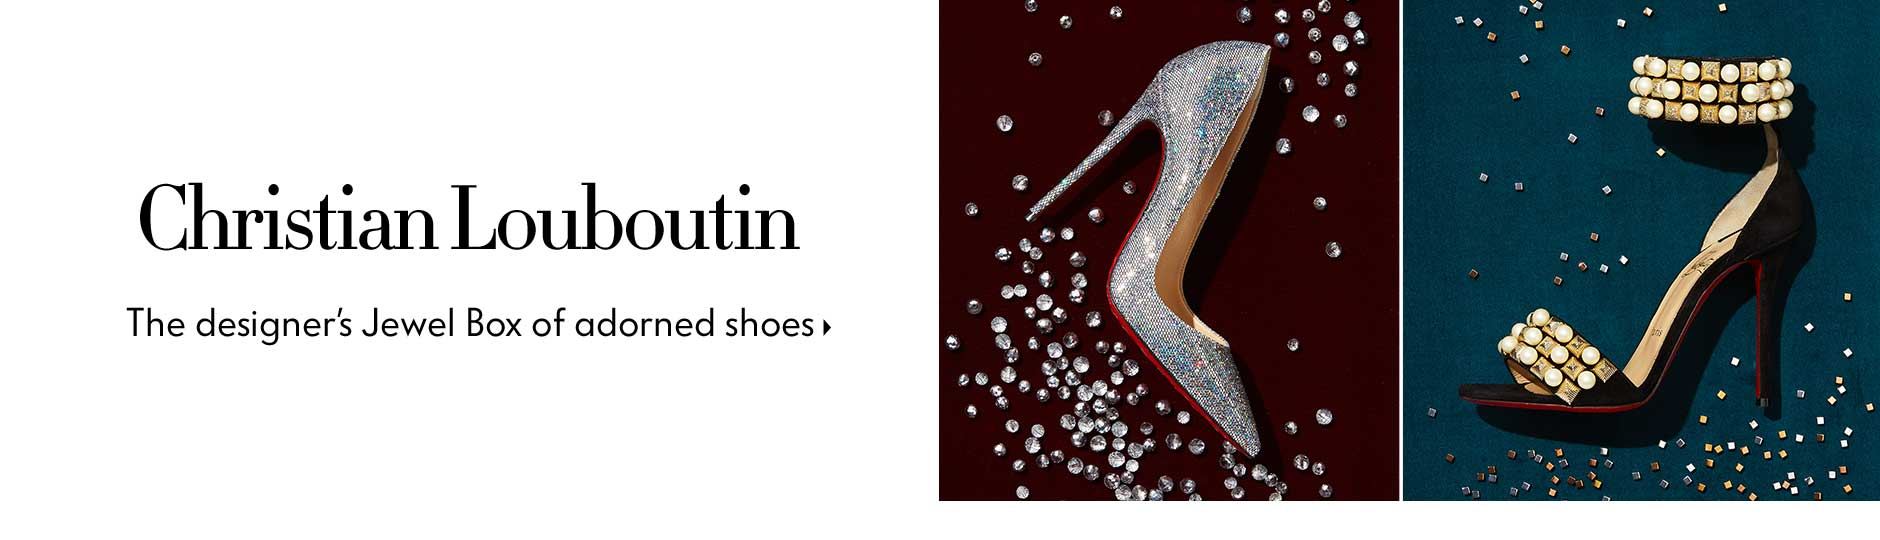 Christian Louboutin - The designer's Jewel Box of adorned shoes